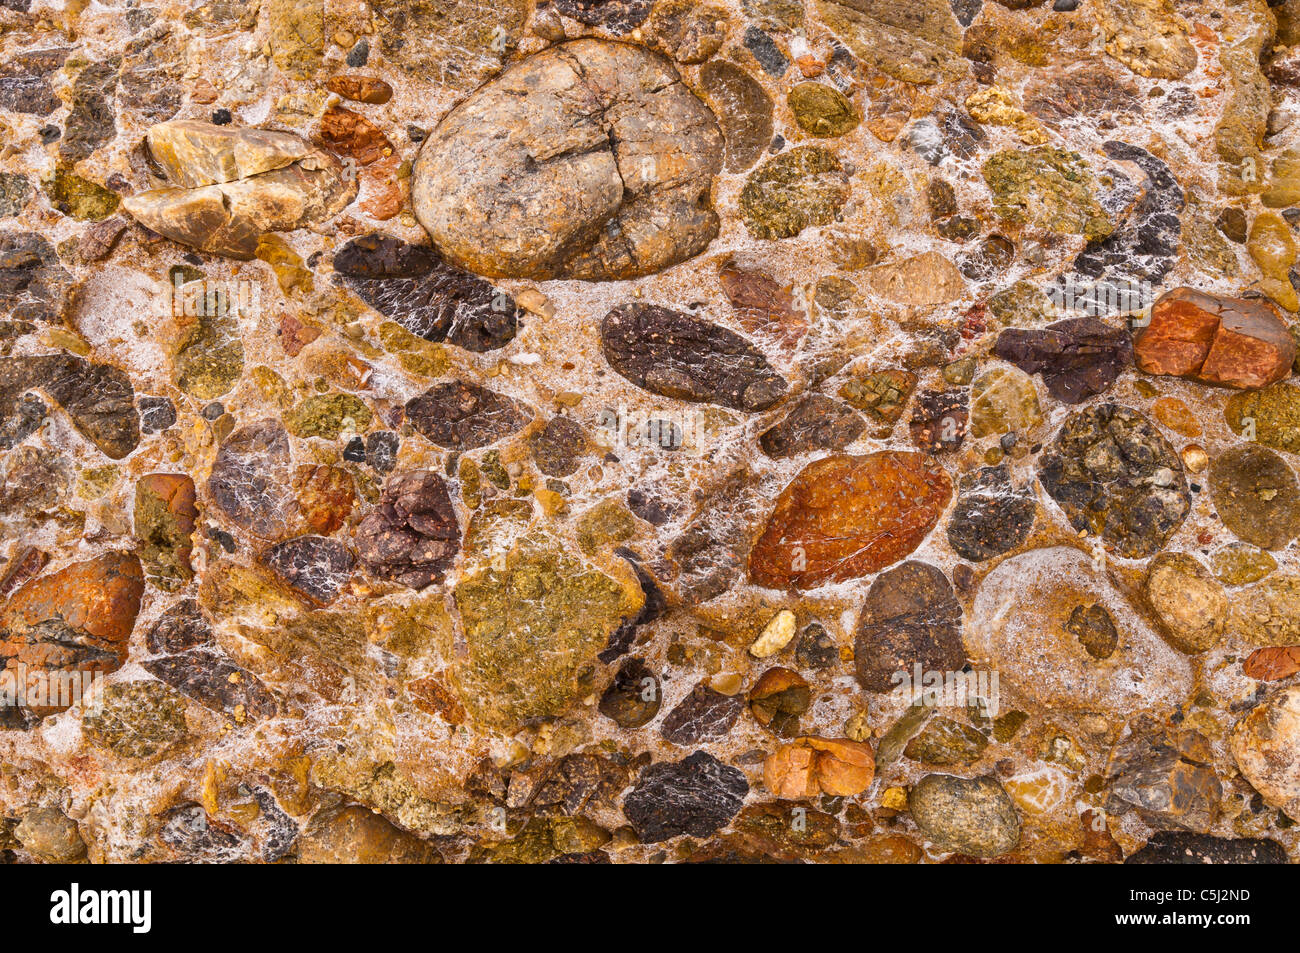 Rock patterns on Weston Beach, Point Lobos State Reserve, Carmel, California - Stock Image